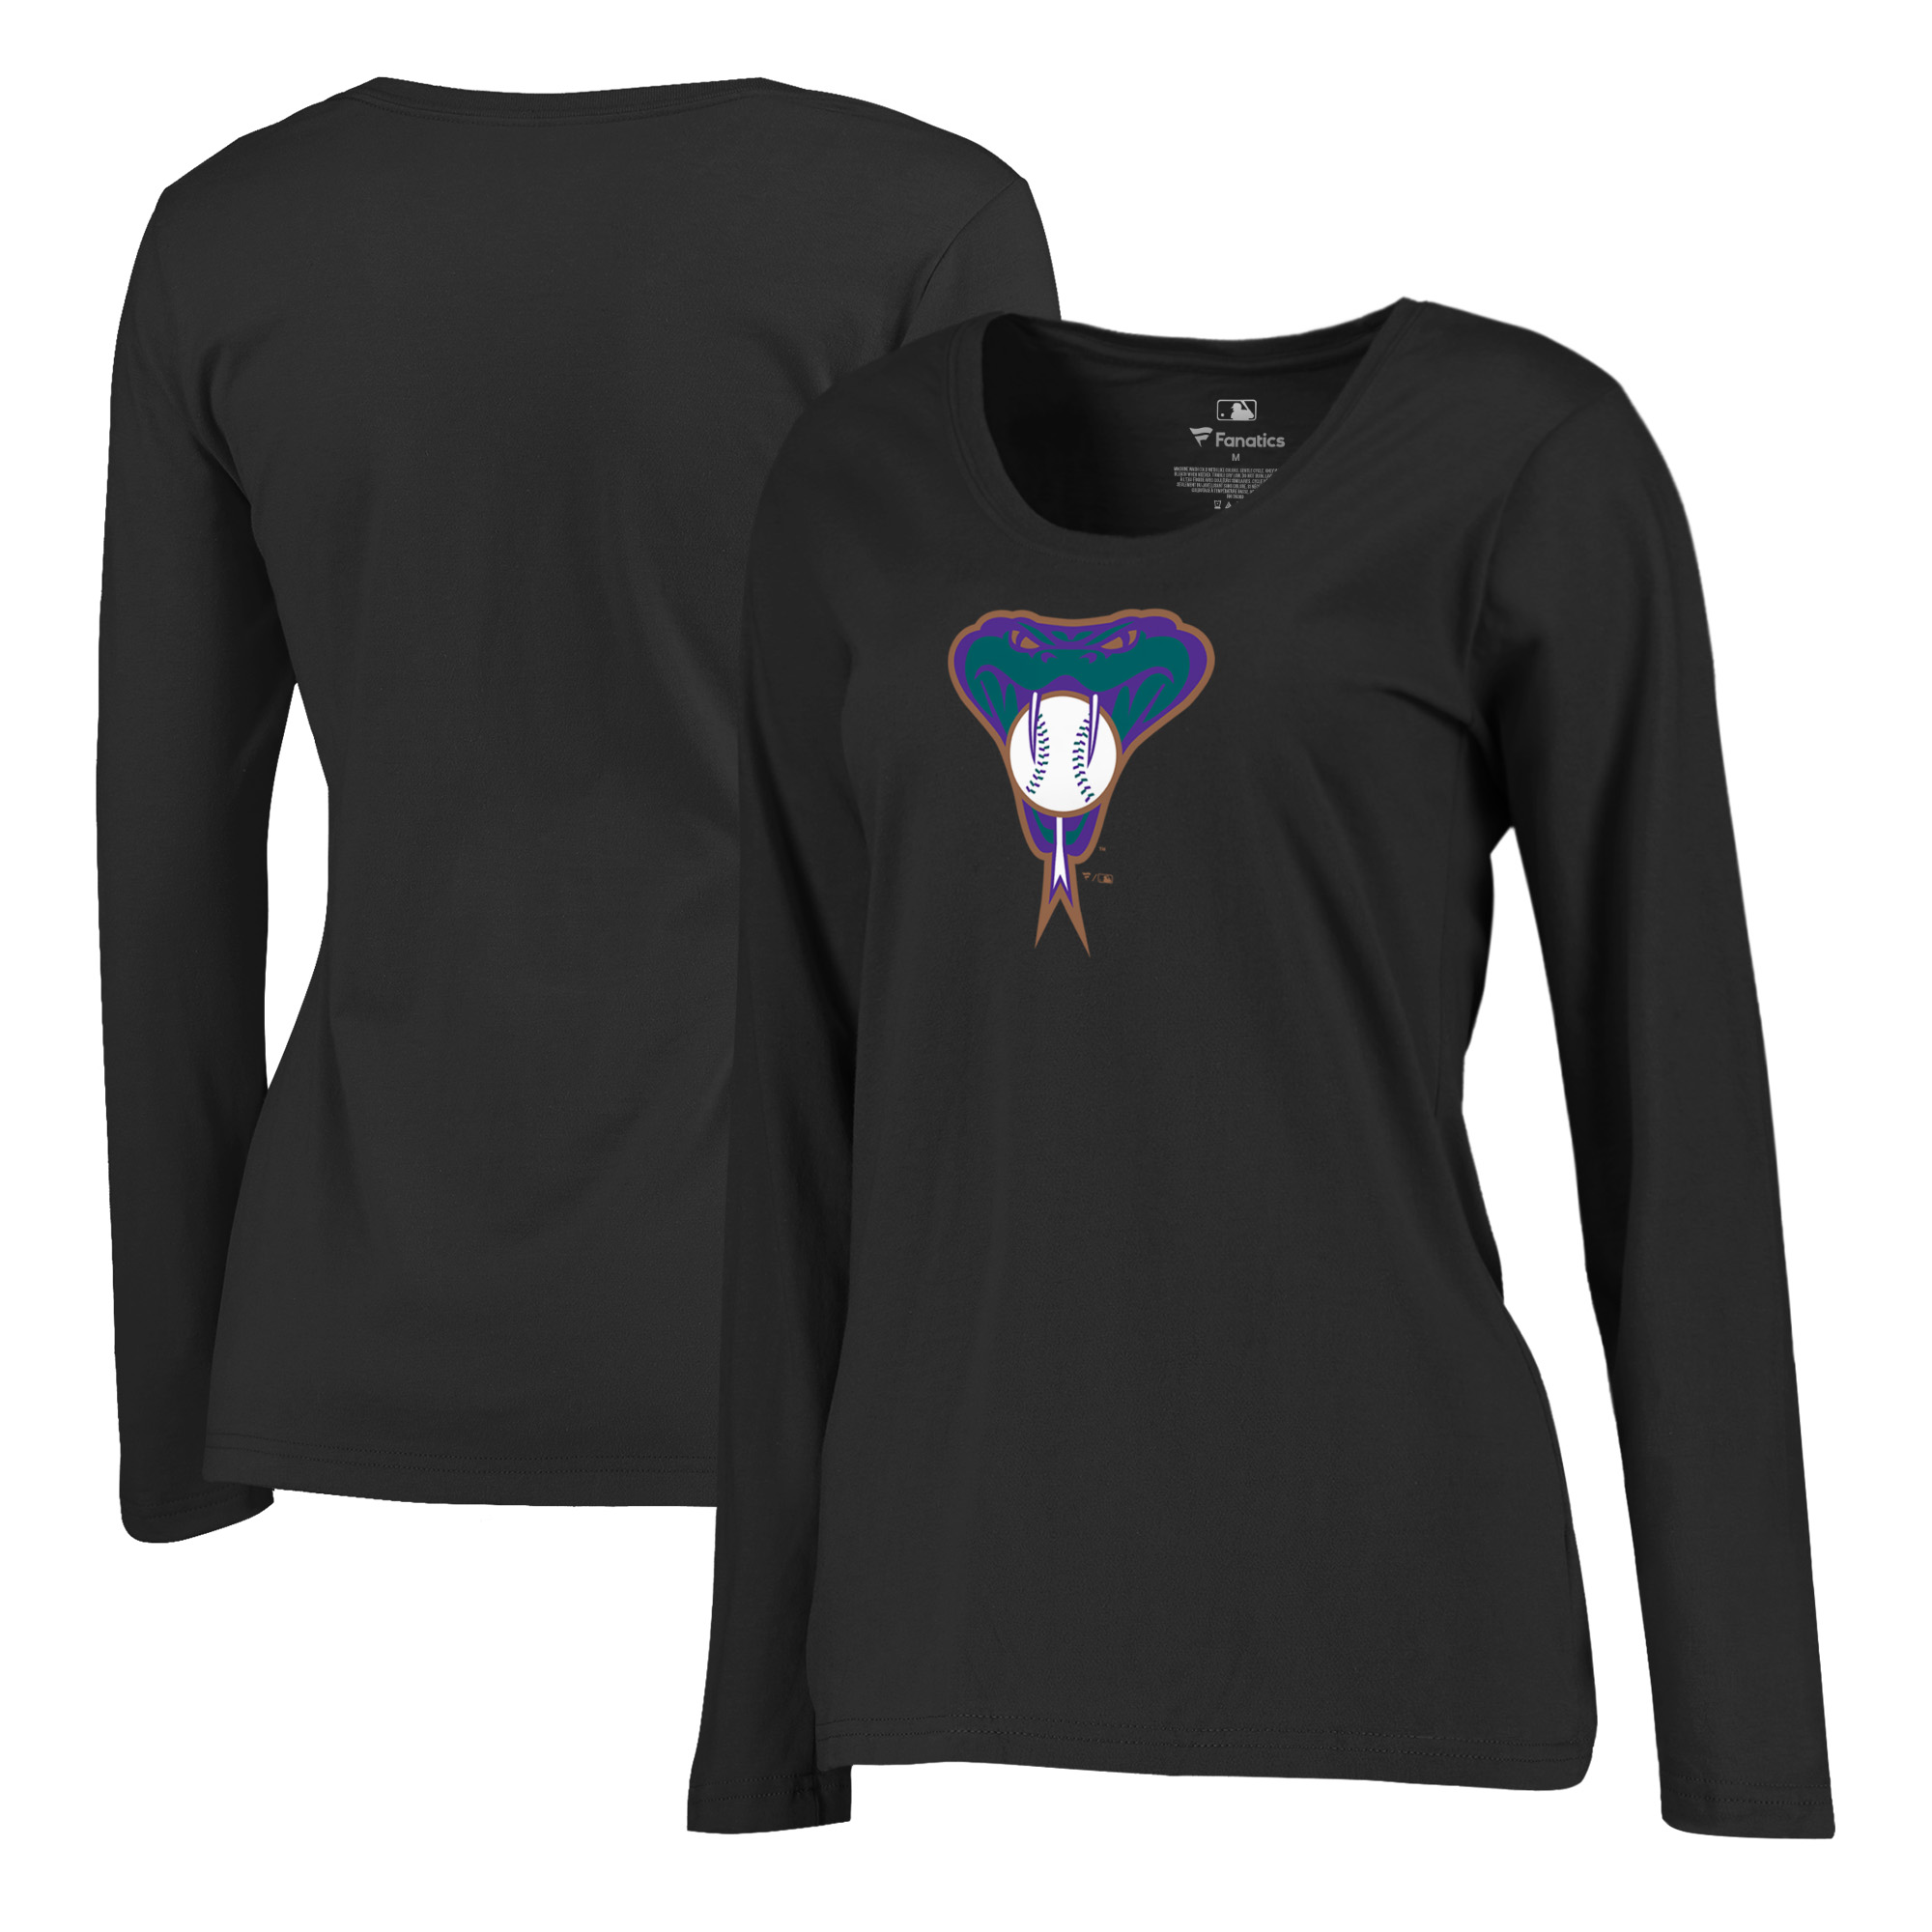 Arizona Diamondbacks Fanatics Branded Women's Plus Size Cooperstown Collection Huntington Long Sleeve T-Shirt - Black